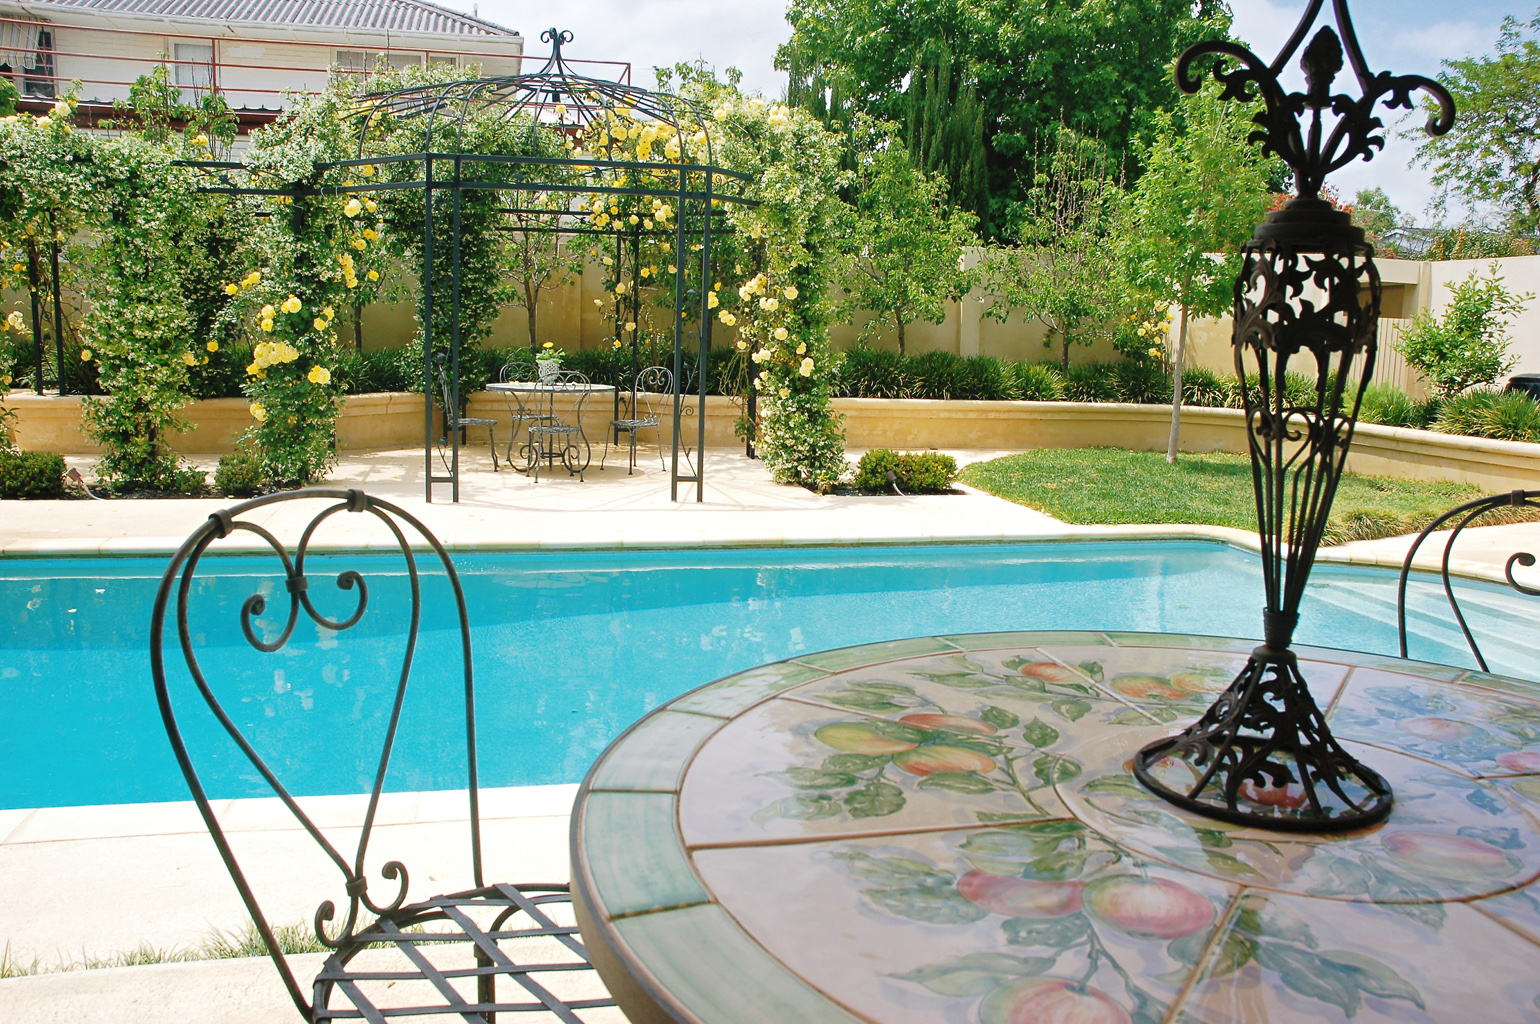 Pool Design & Landscaping Dalkeith